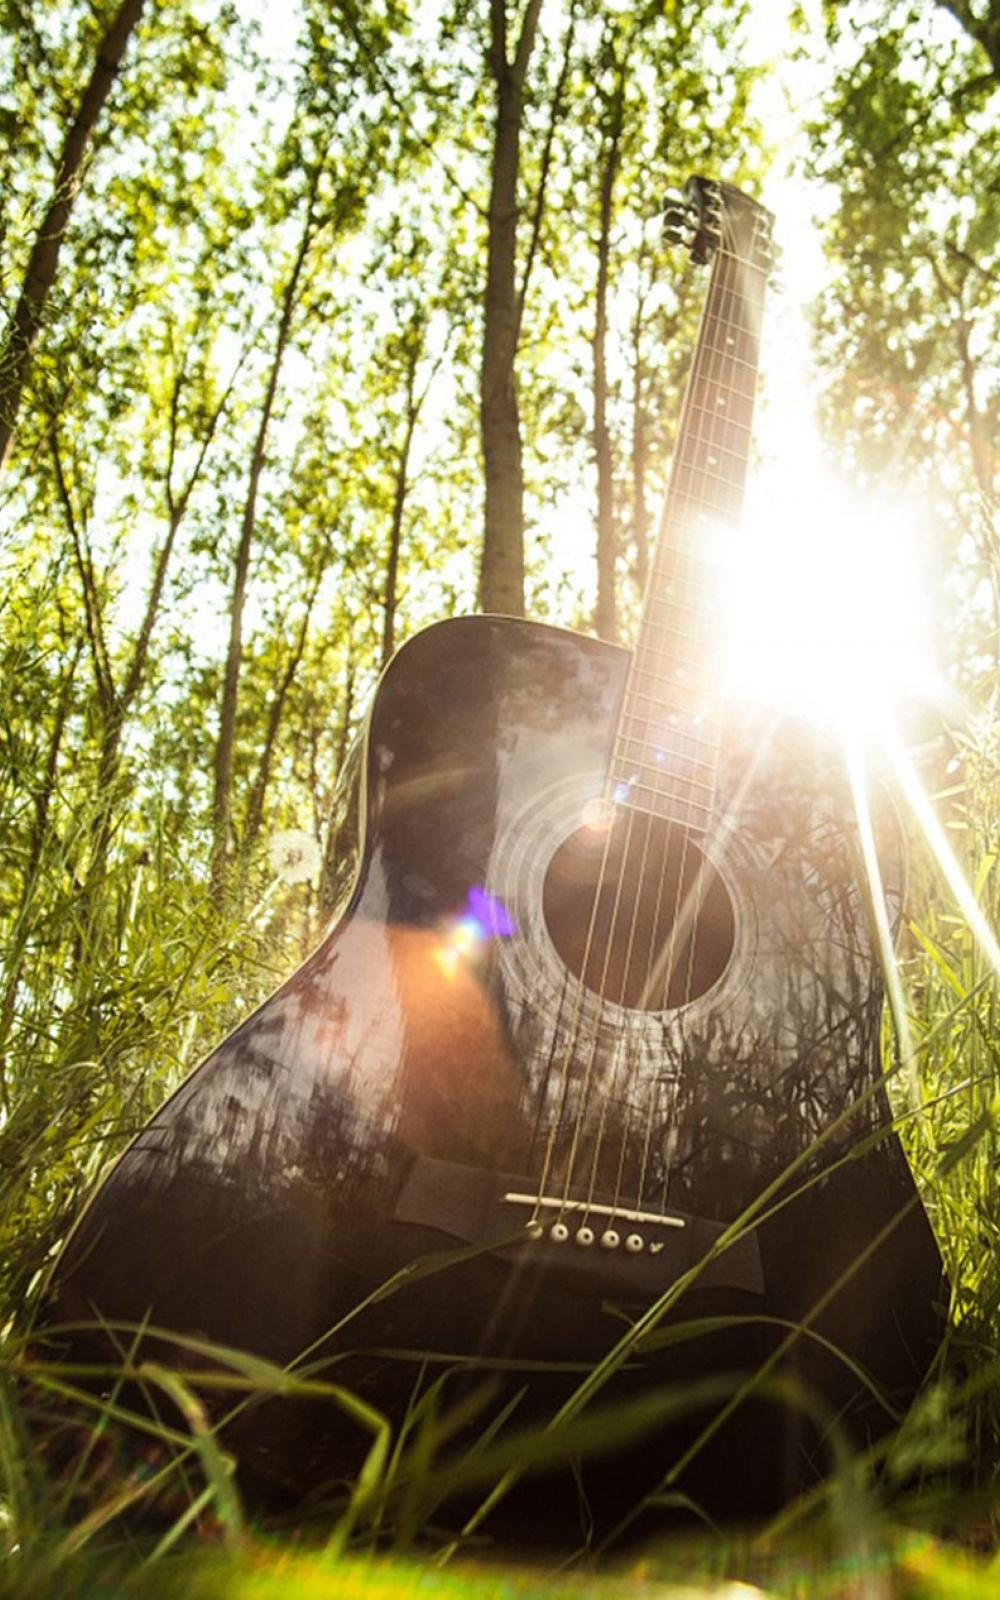 Acoustic Guitar Download Free Hd Mobile Wallpapers